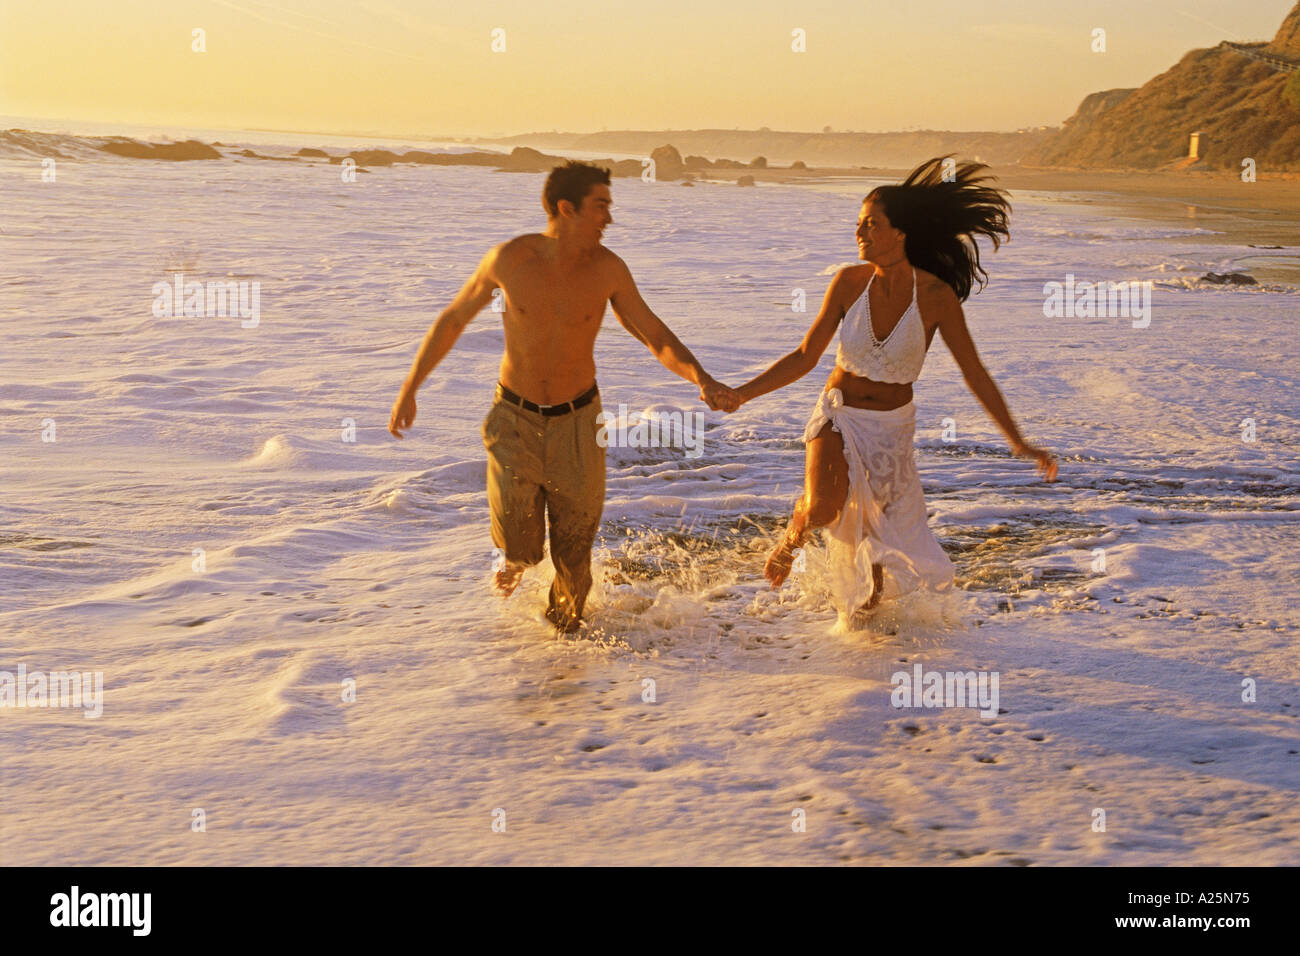 Couple enjoying happy romantic moments in waves breaking on sandy shore along Southern California coast at sunset - Stock Image